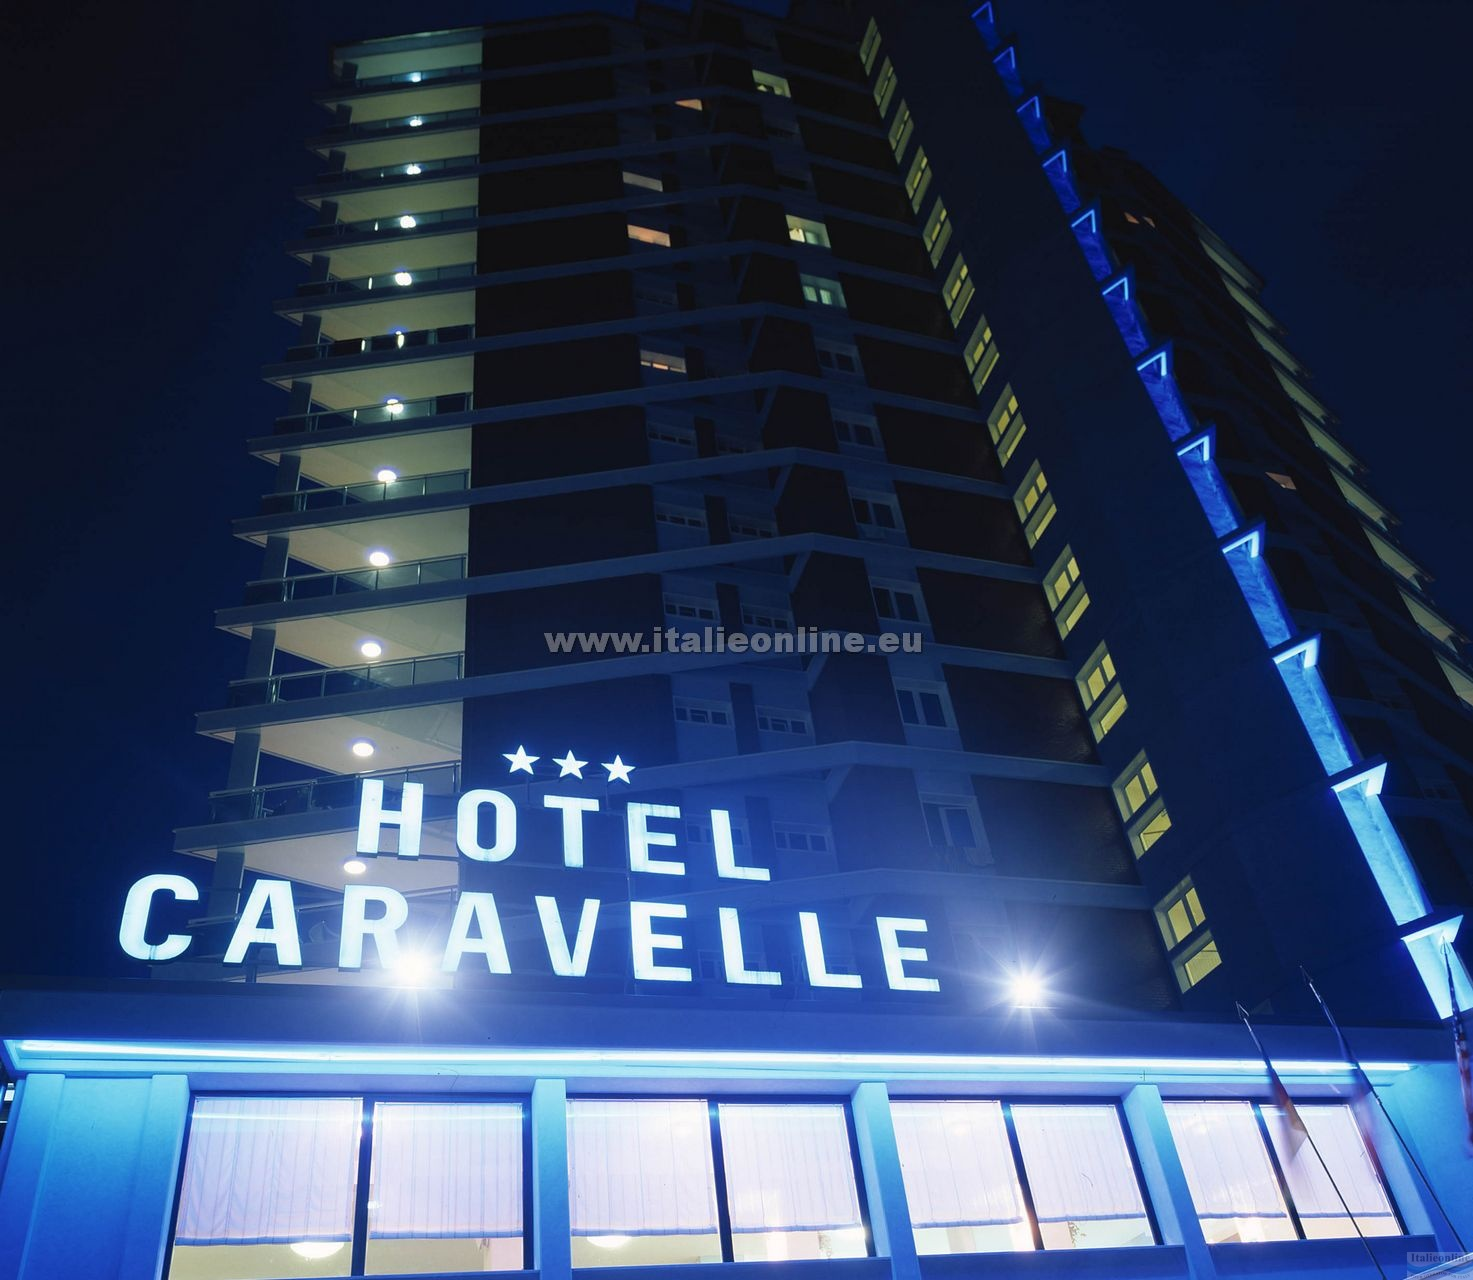 Hotel Caravelle & Minicaravelle